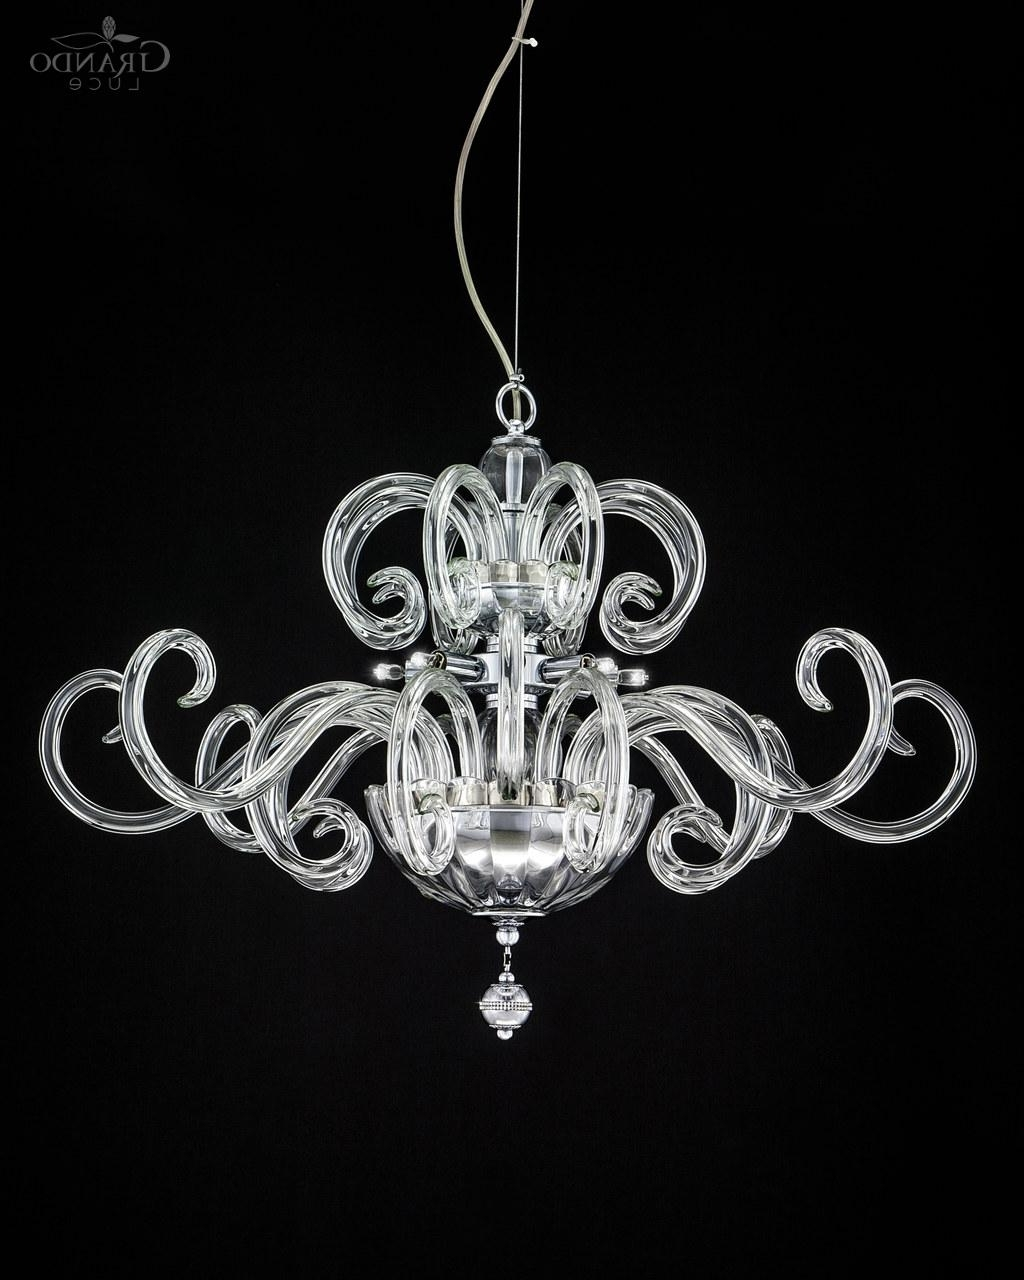 Newest 119/sm Chrome Modern Crystal Chandelier With Swarovski Elements Inside Chrome And Crystal Chandelier (View 12 of 20)